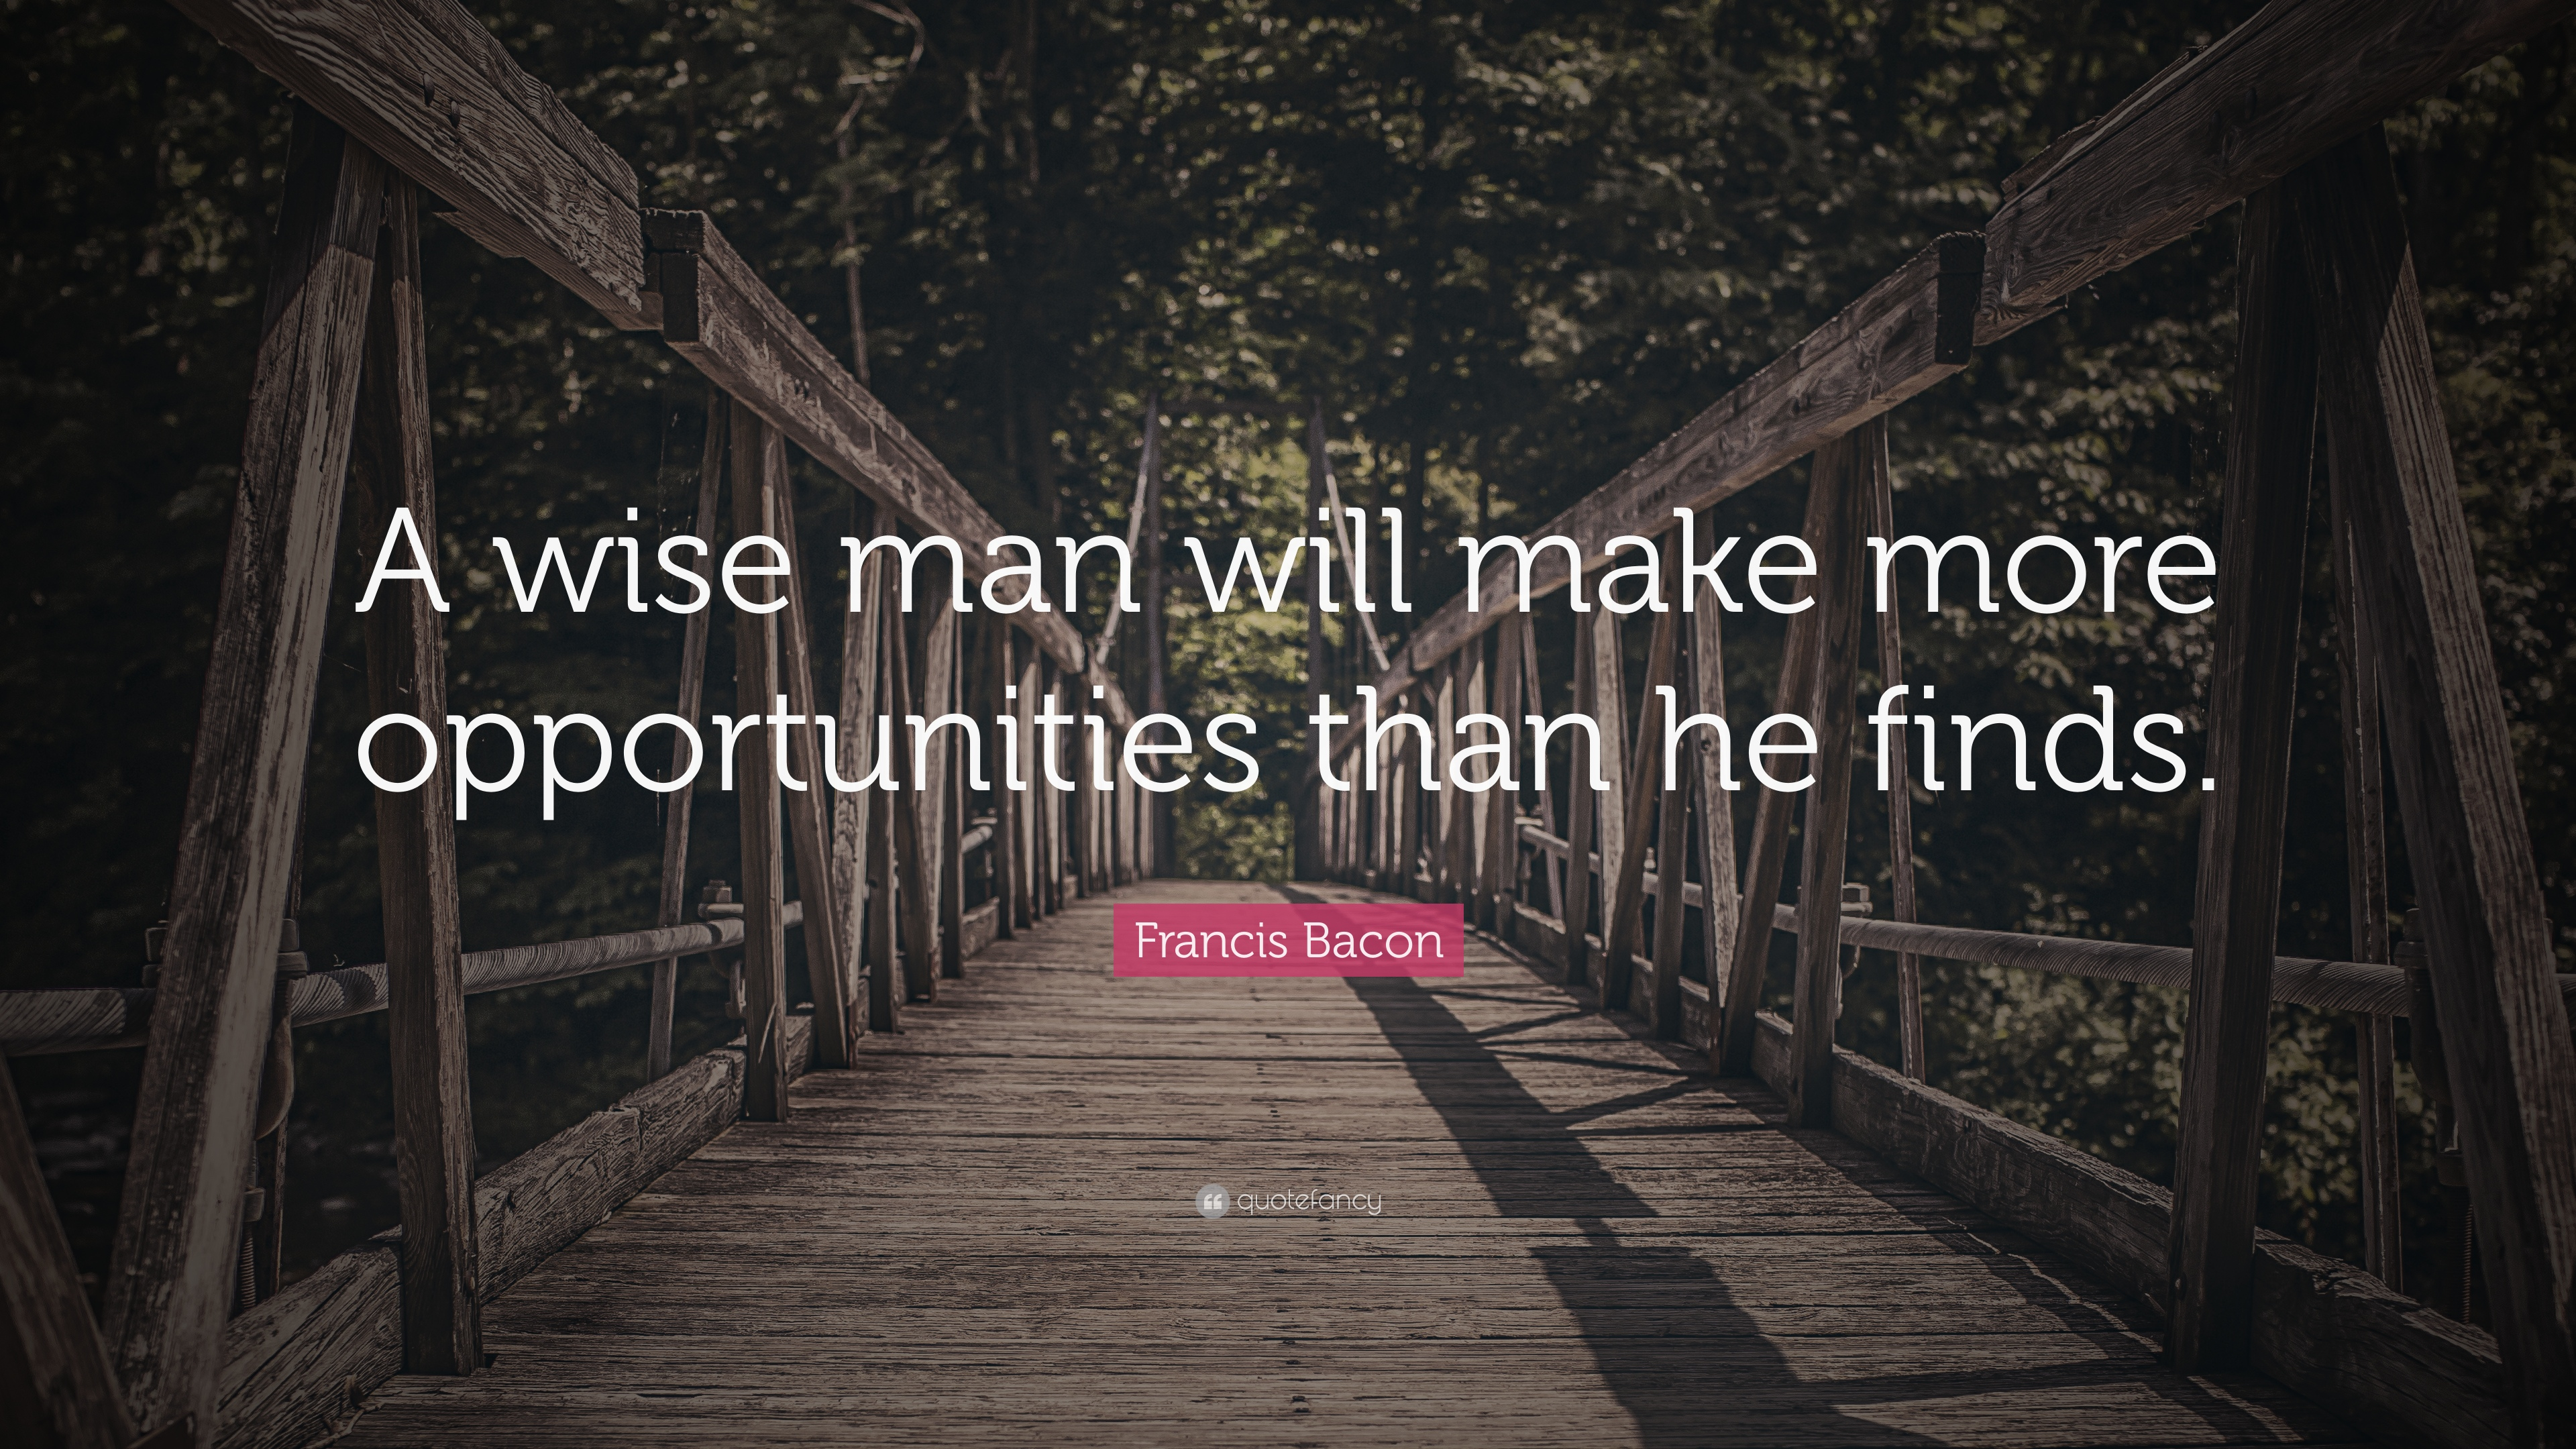 Graduation Quotes: U201cA Wise Man Will Make More Opportunities Than He Finds.u201d